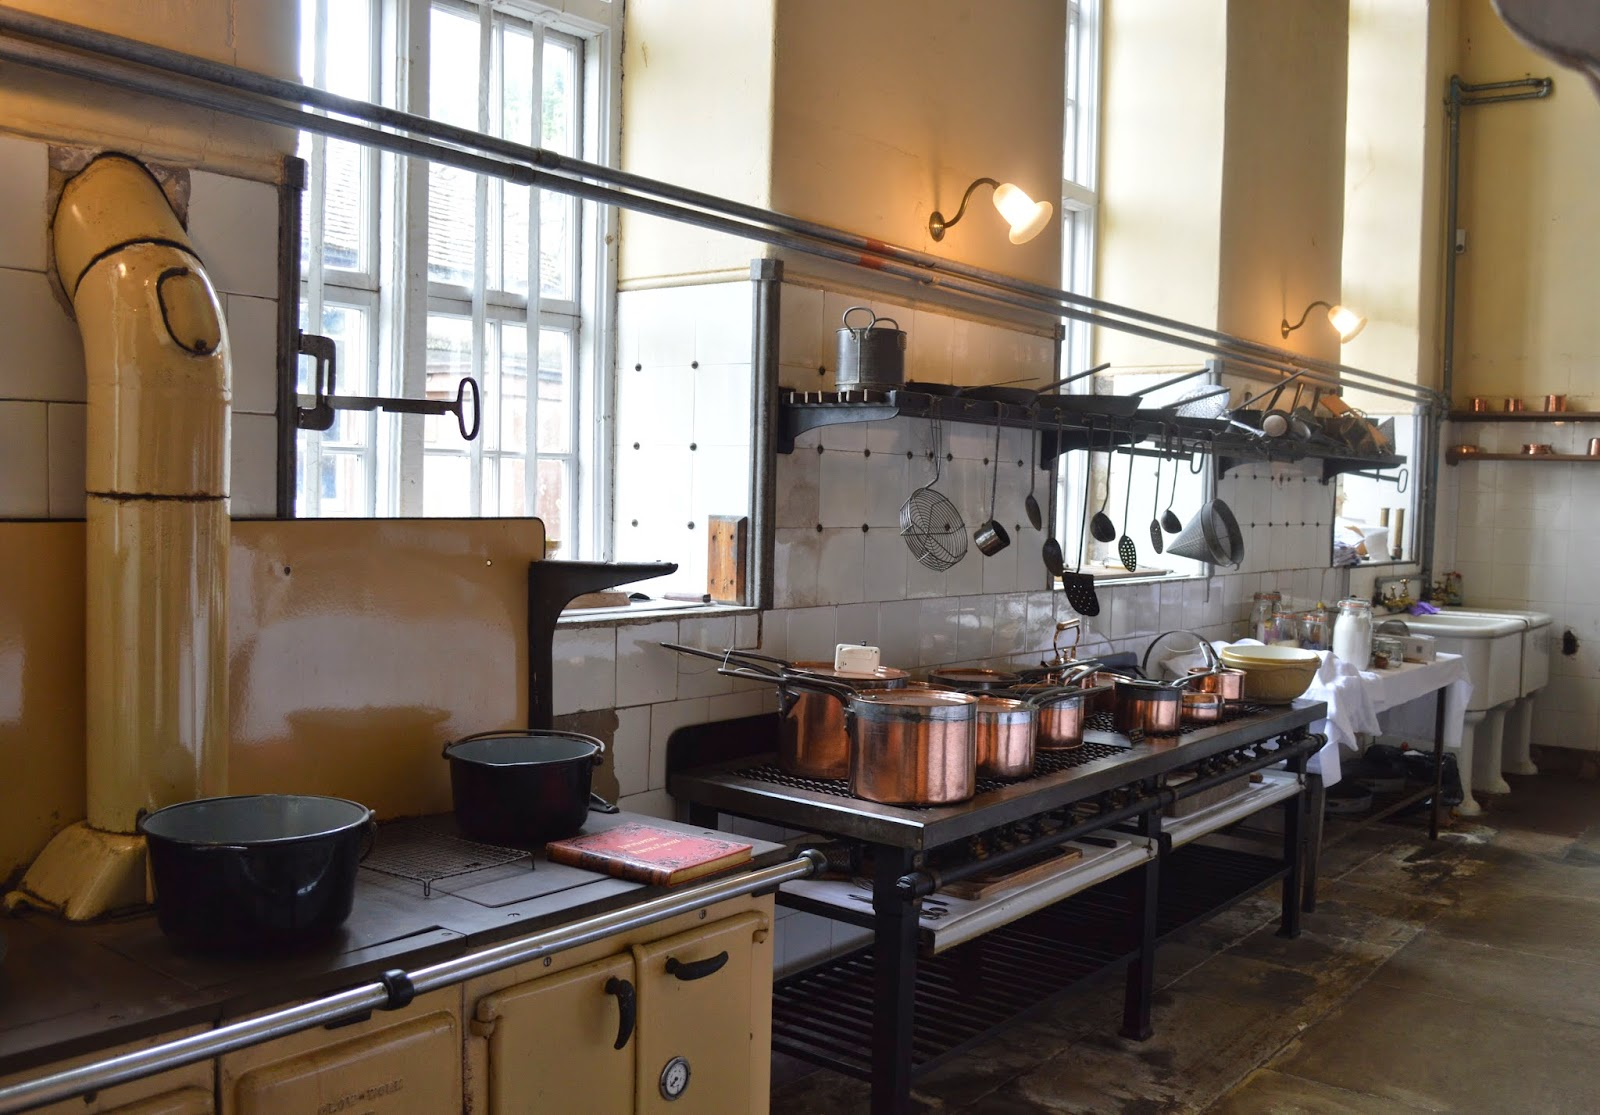 Petworth House and Garden, inside, interior, visit, review, National Trust, history, UK, England, Sussex, historical property, old building, culture, day trip, photo, photograph, Percy Family, Elizabeth Seymour, Duchess of Somerset, Earl of Egremount, Wyndham